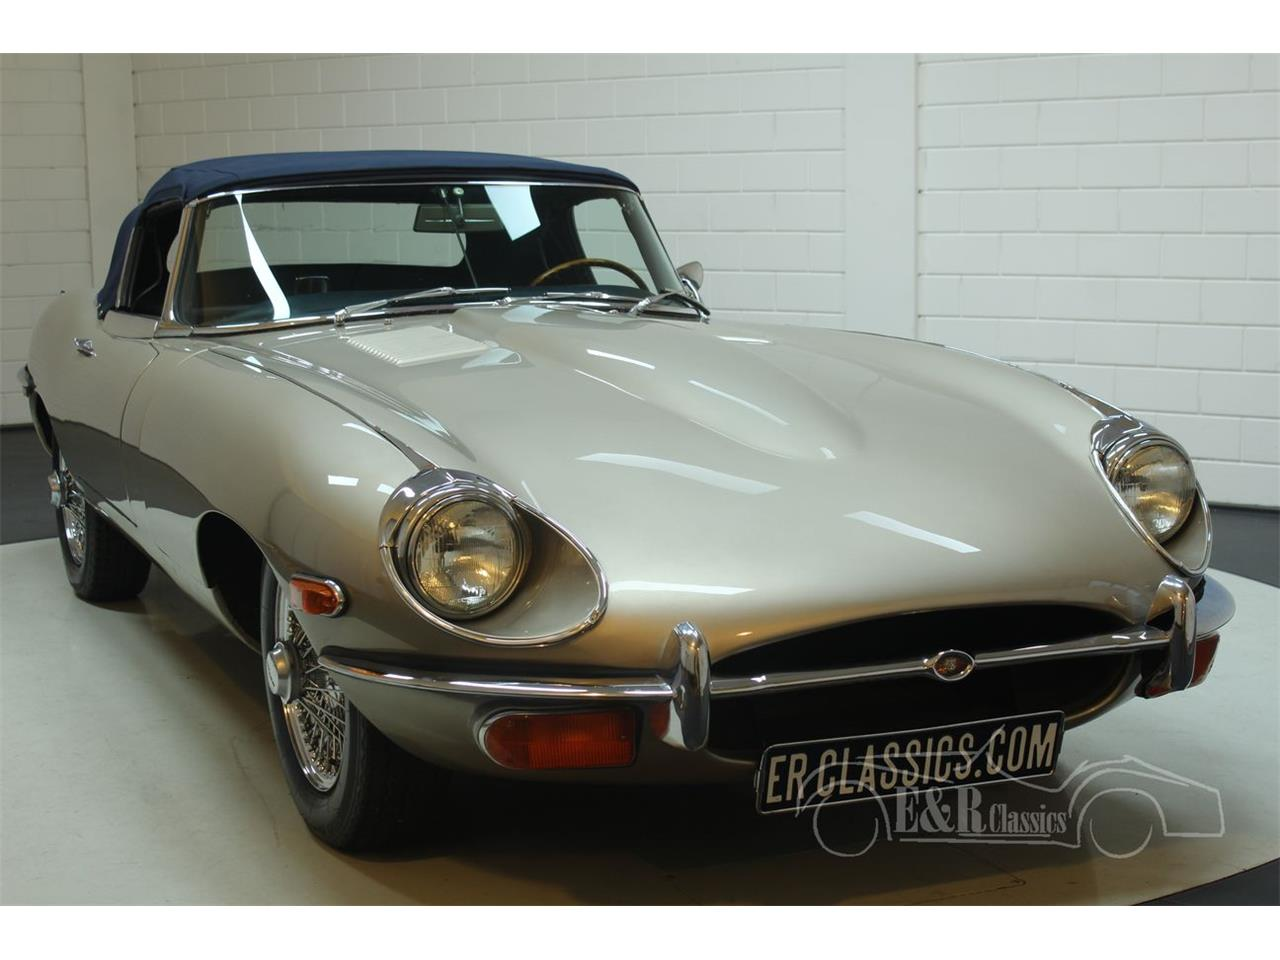 Large Picture of 1970 Jaguar E-Type located in Waalwijk - Keine Angabe - - $112,750.00 - PH40